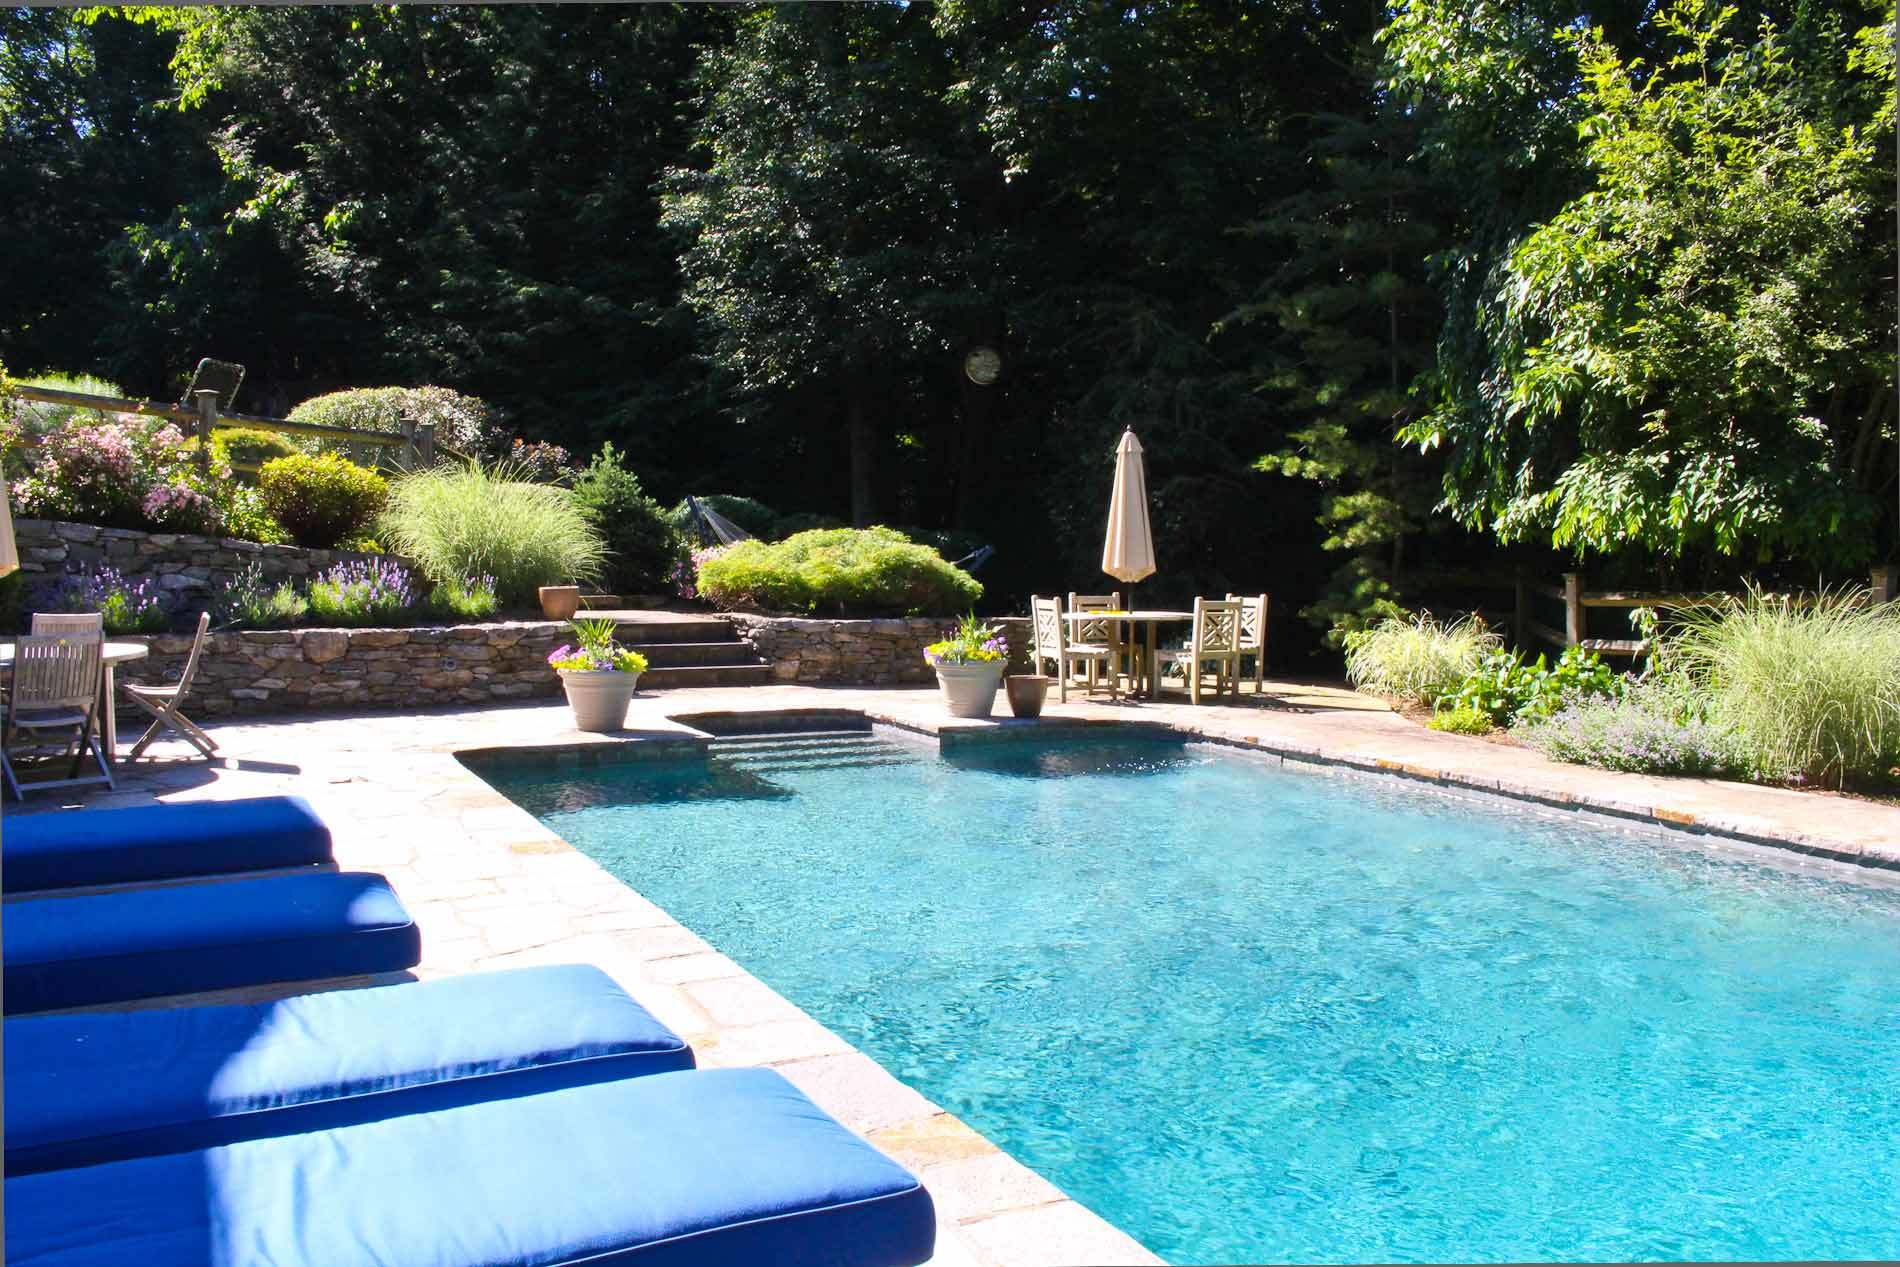 Homes With Swimming Pool For Sale In Fairfield Ct Find And Buy Houses With Pool Dagny 39 S Real